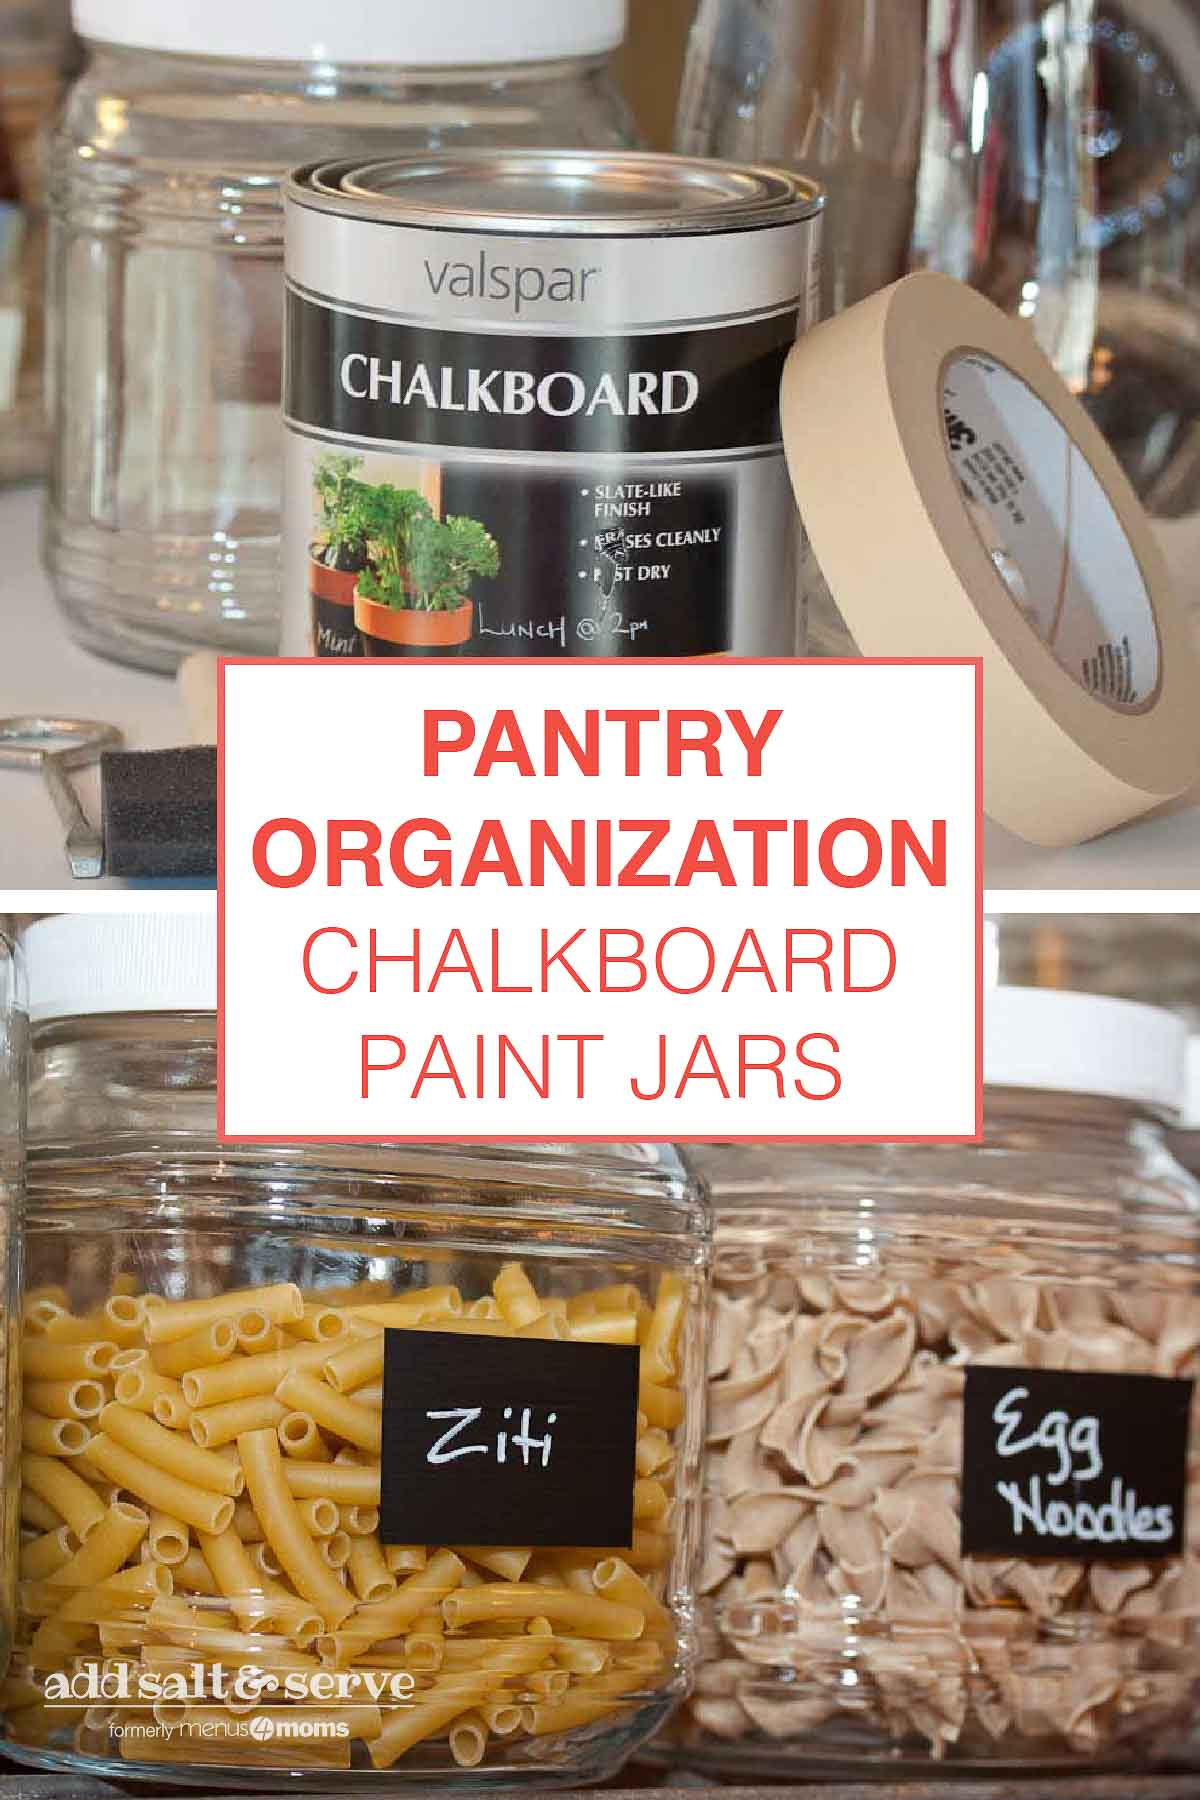 jars painted with chalkboard paint and labeled with markers